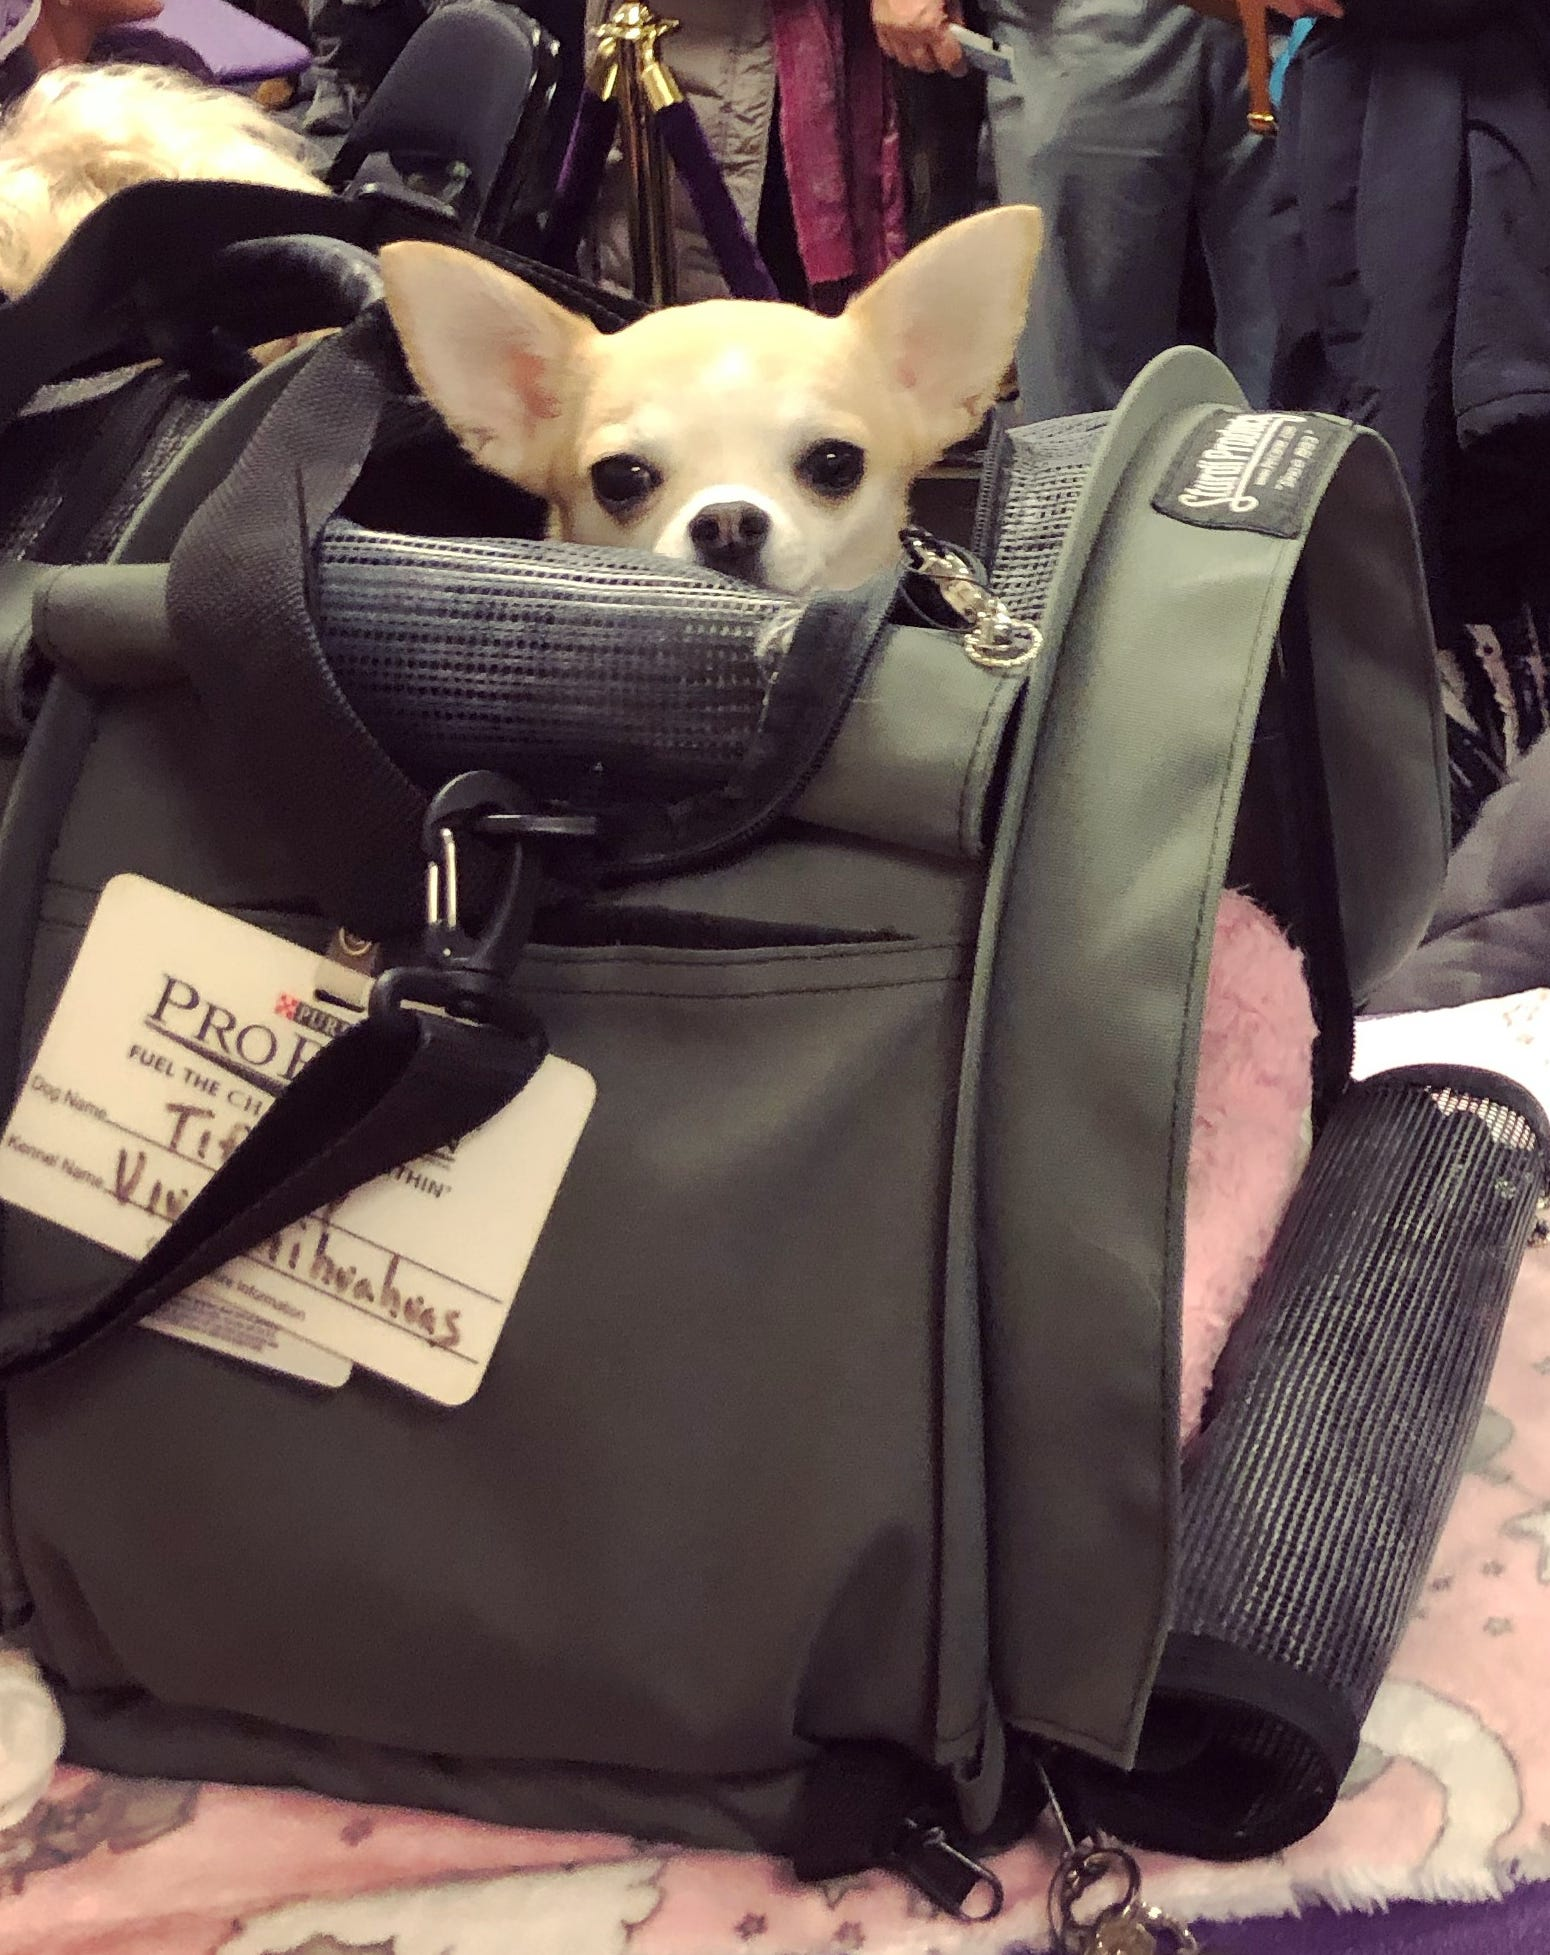 Tiffany, a smooth-coat Chihuahua from Delaware, peeks out of her carrier at the 143rd annual Westminster Kennel Club Dog Show in New York on Monday, Feb. 11, 2019.